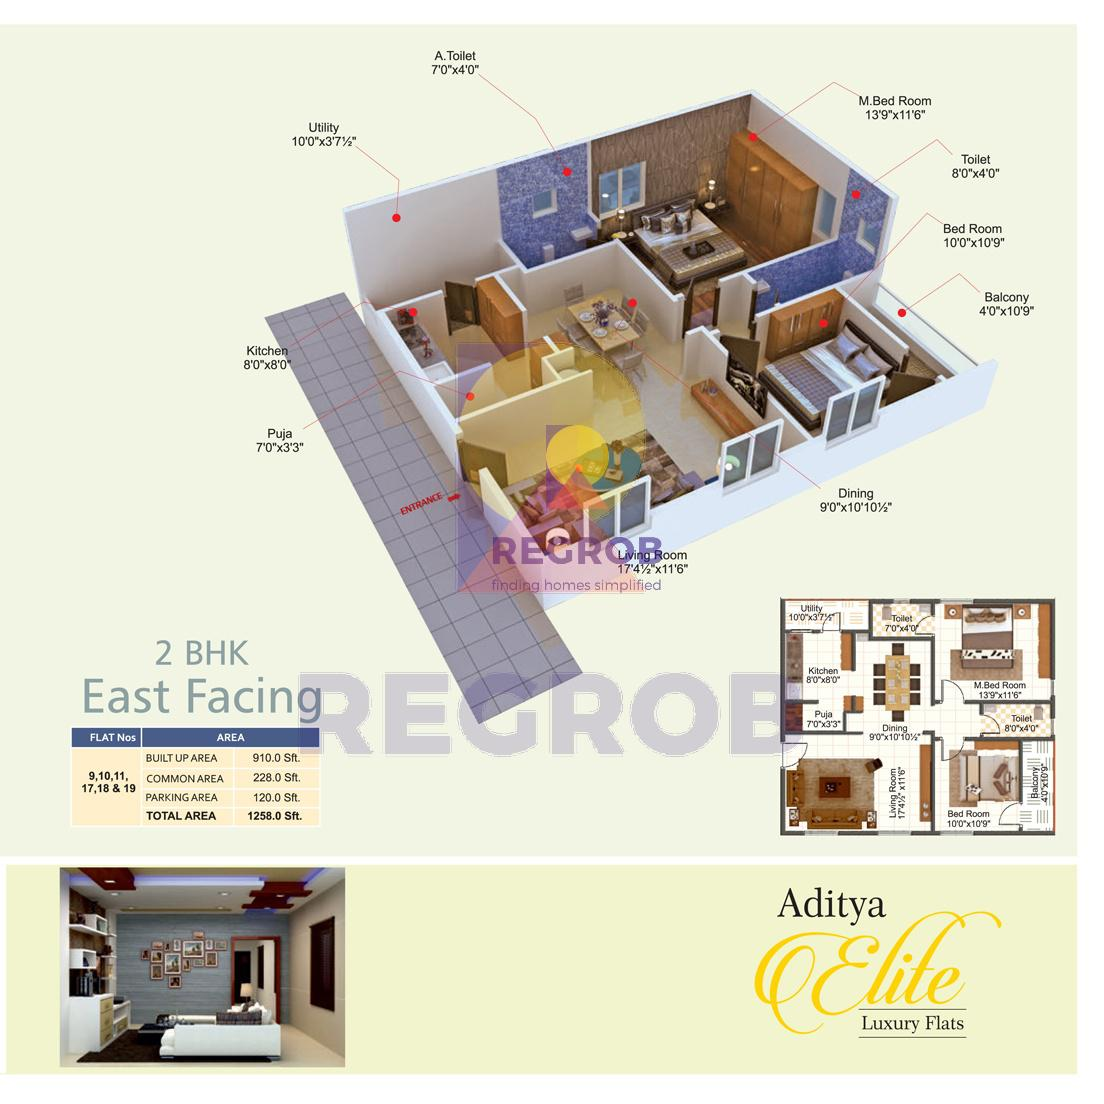 Aditya Elite 2 BHK Floor Plan